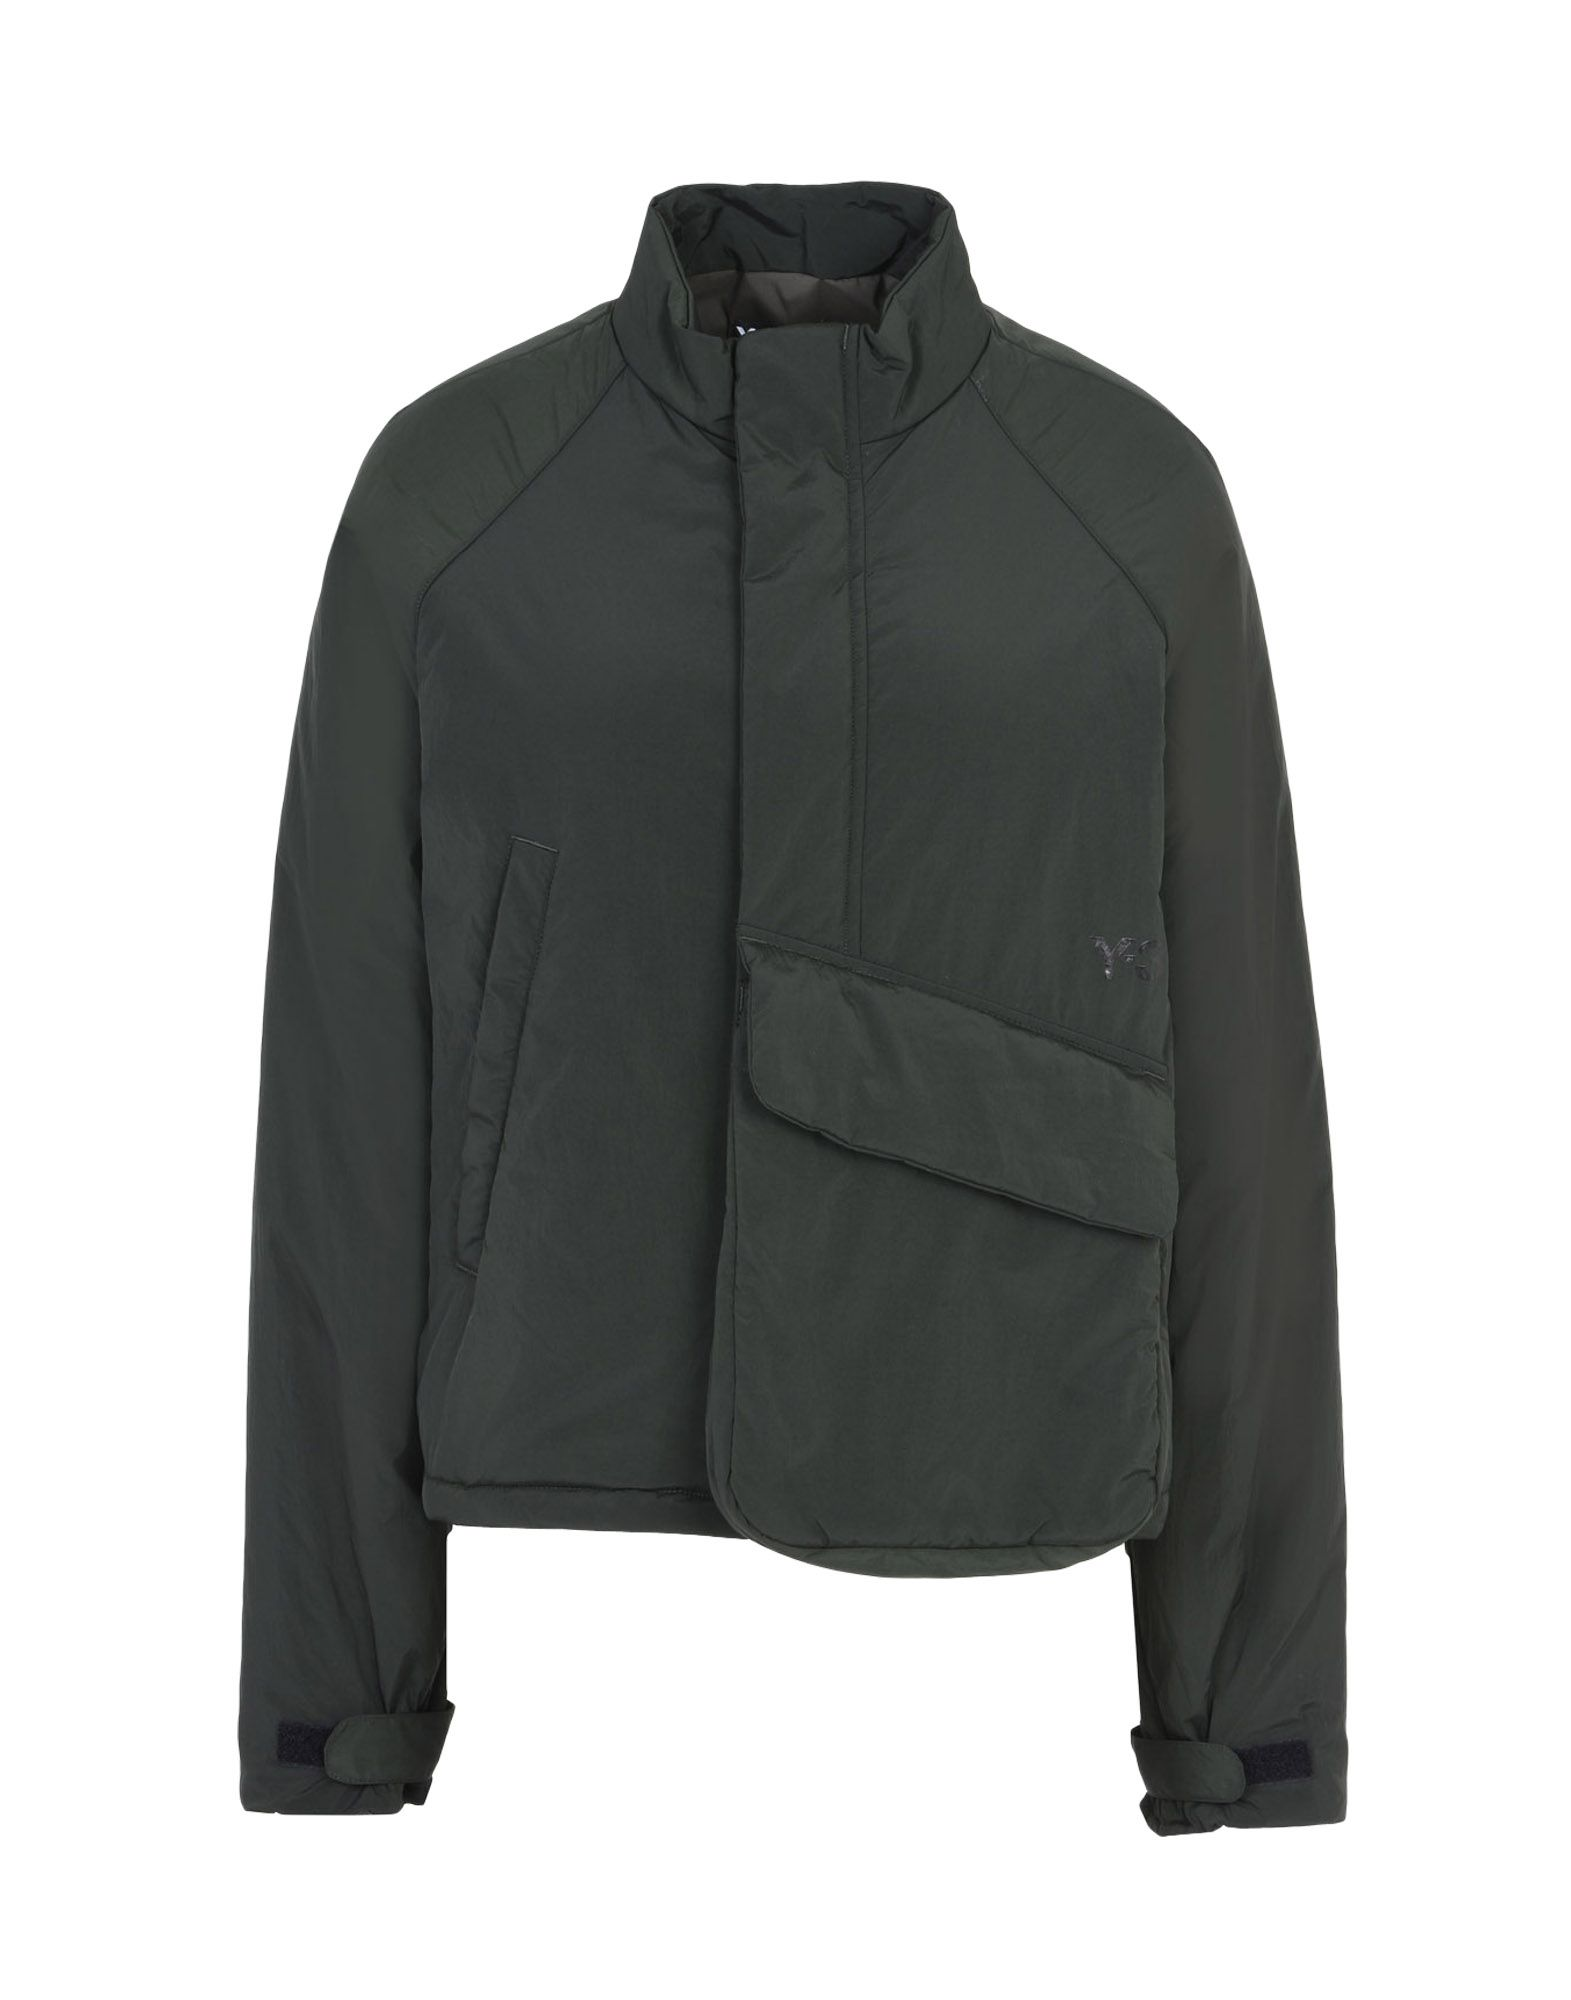 Y 3 PADDED SHORT JACKET Jackets for Women | Adidas Y-3 Official Store